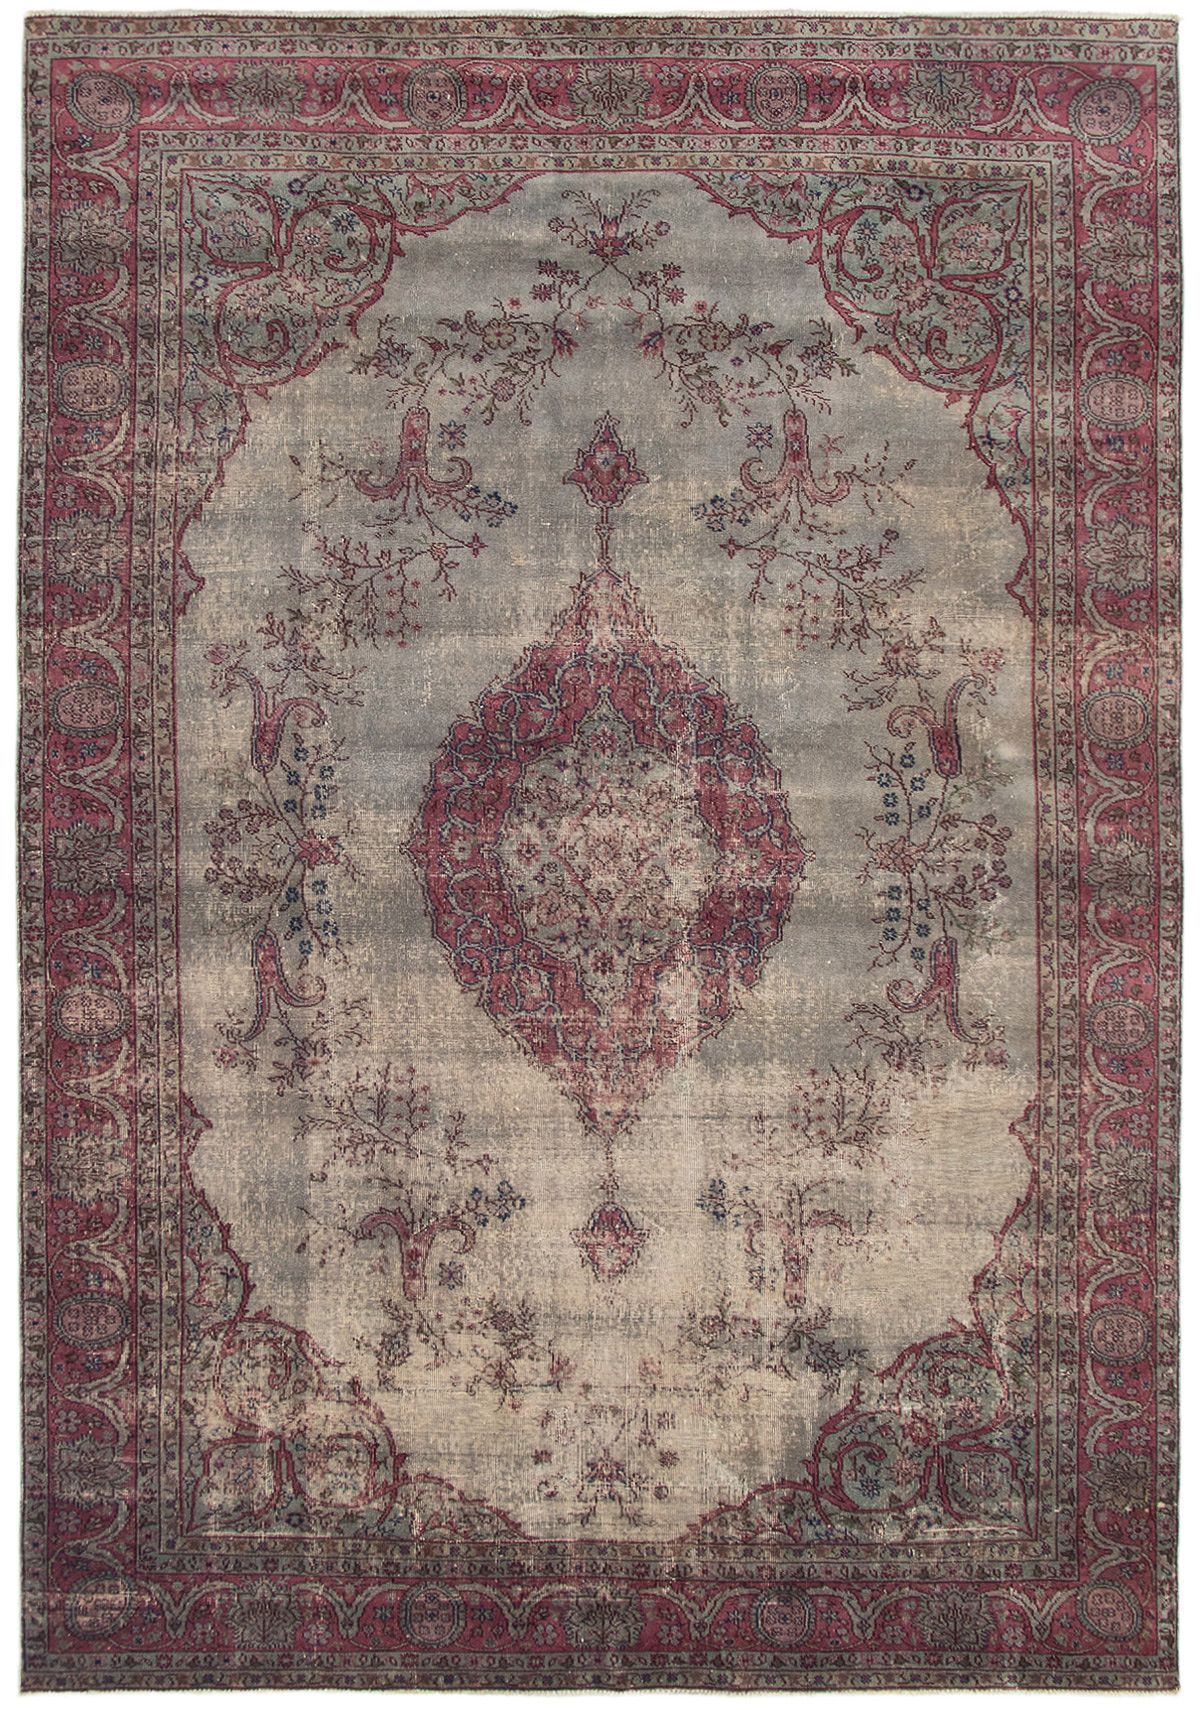 """Hand-knotted Color Transition Dark Red, Light Grey Wool Rug 7'8"""" x 11'3"""" Size: 7'8"""" x 11'3"""""""